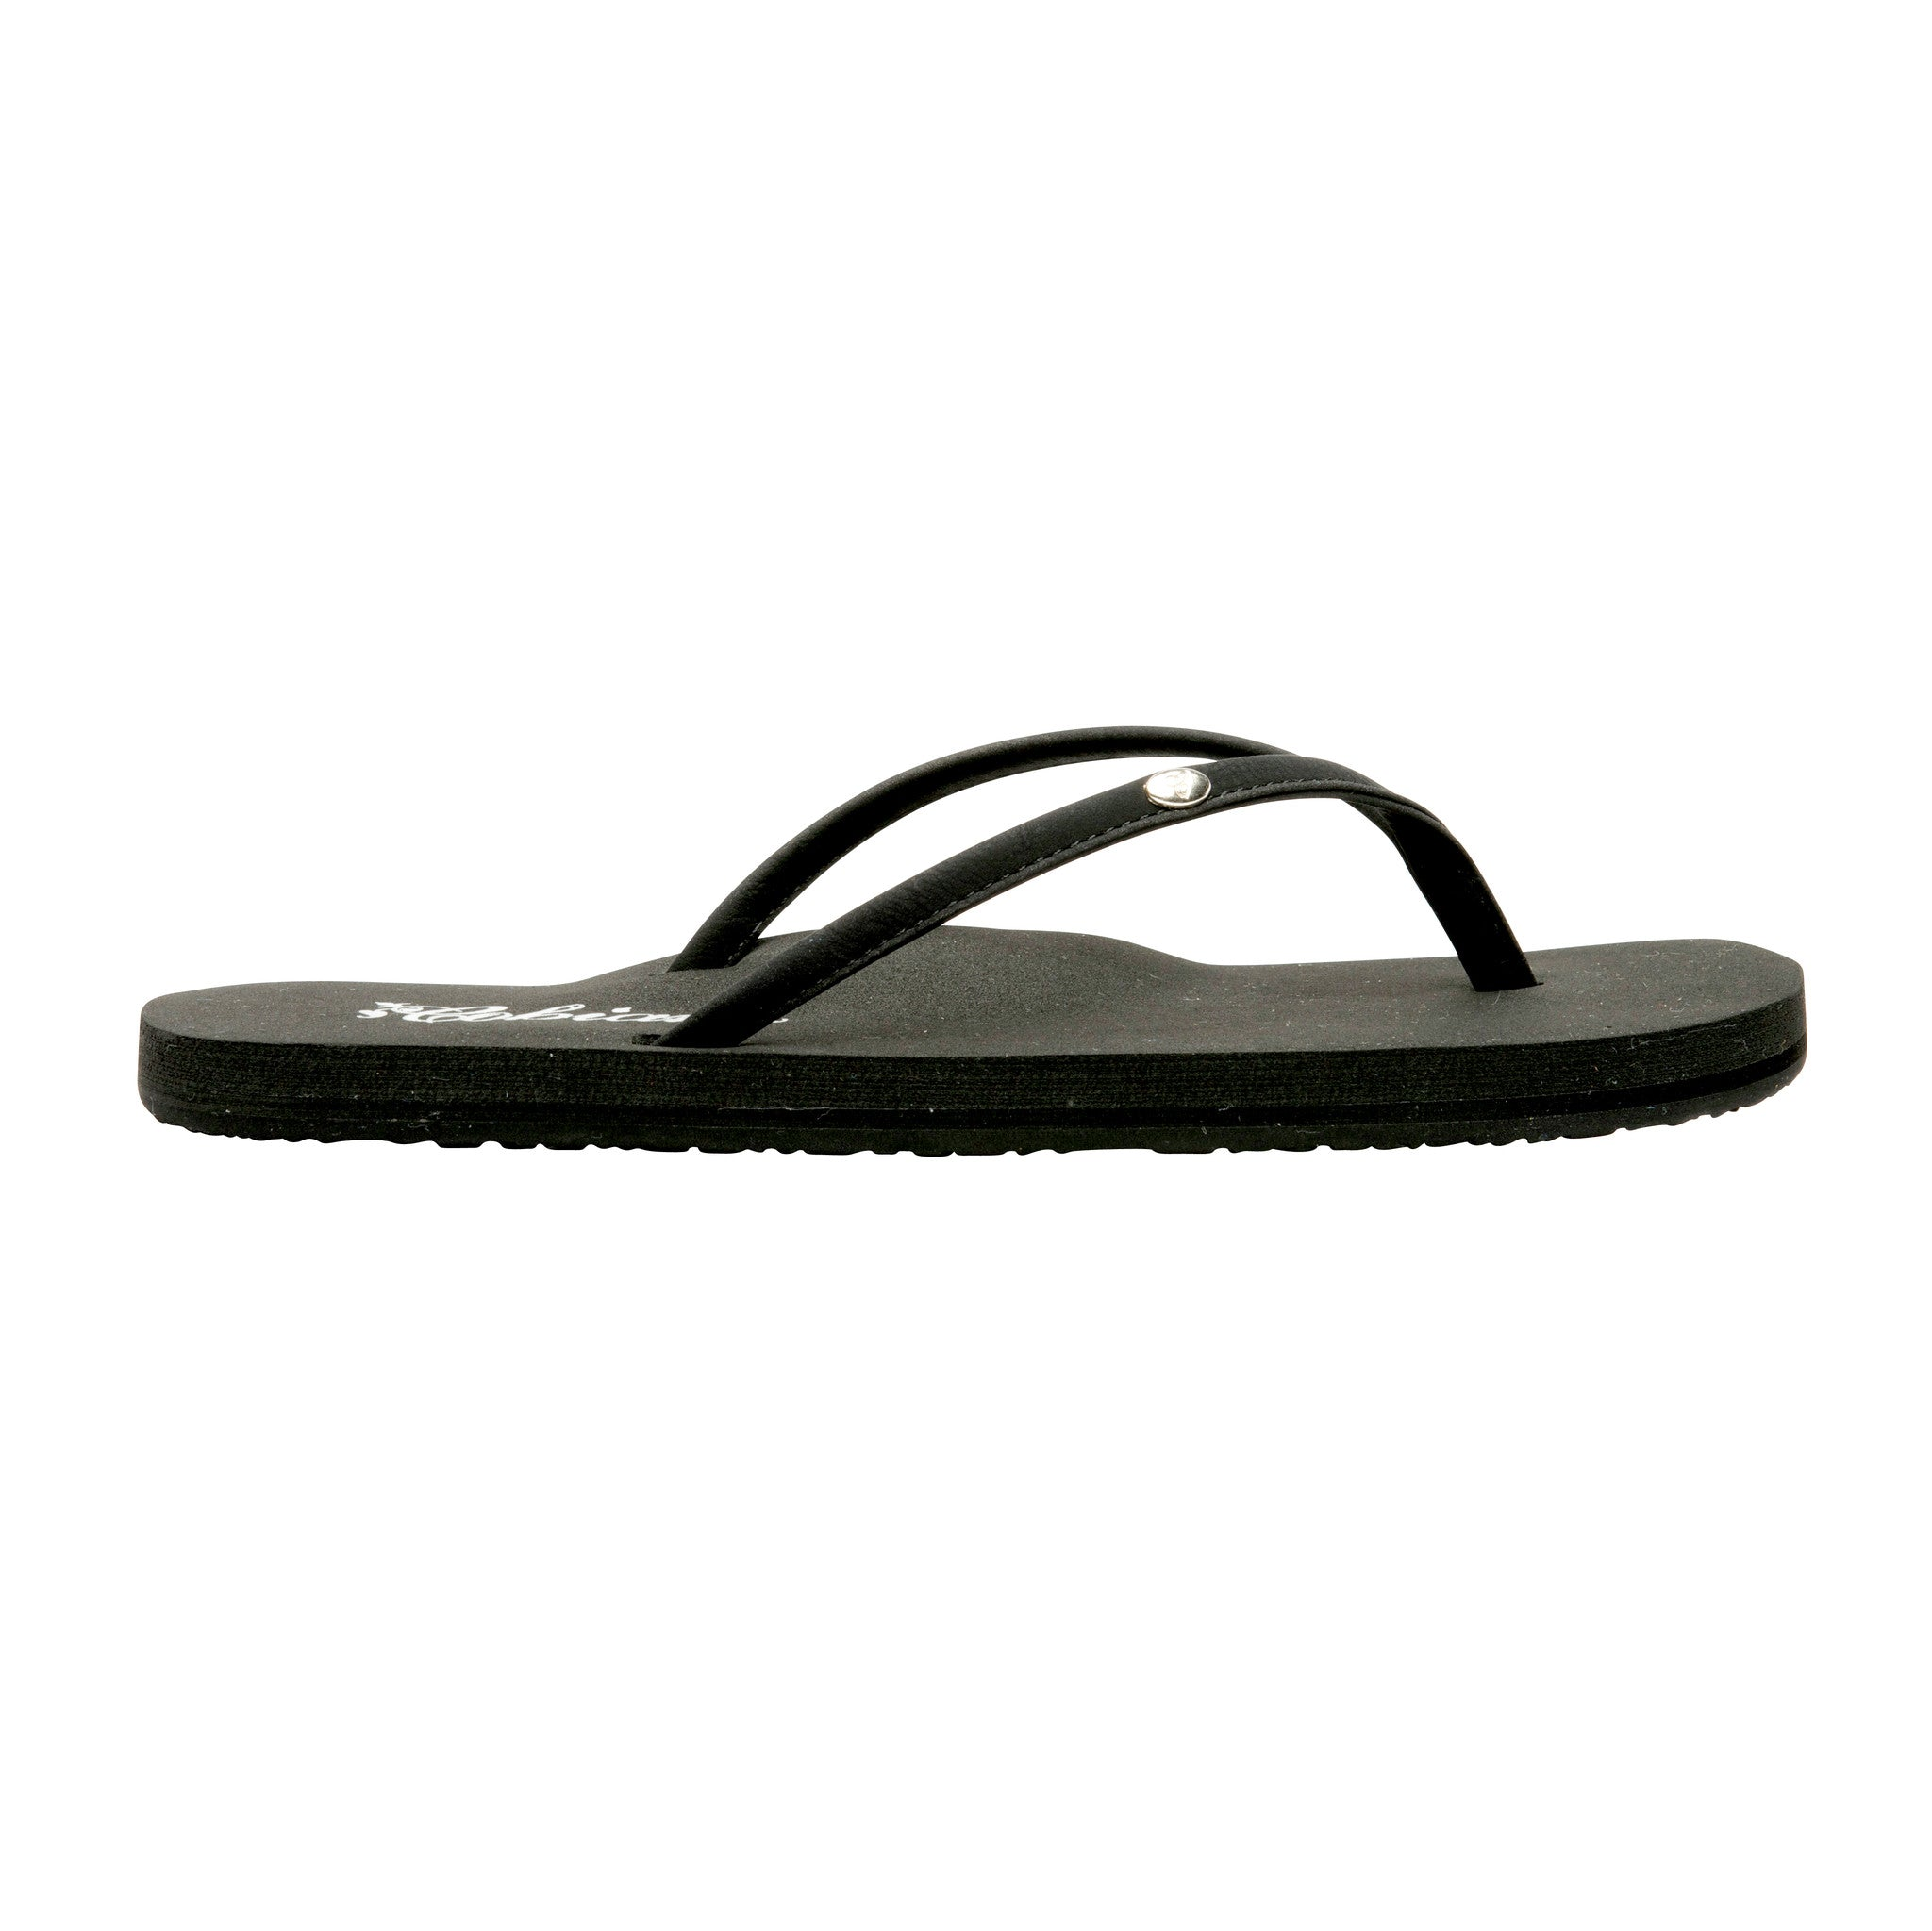 826b1708bc4e5 Cobian Nias Bounce Womens Sandals – Groundswell Supply